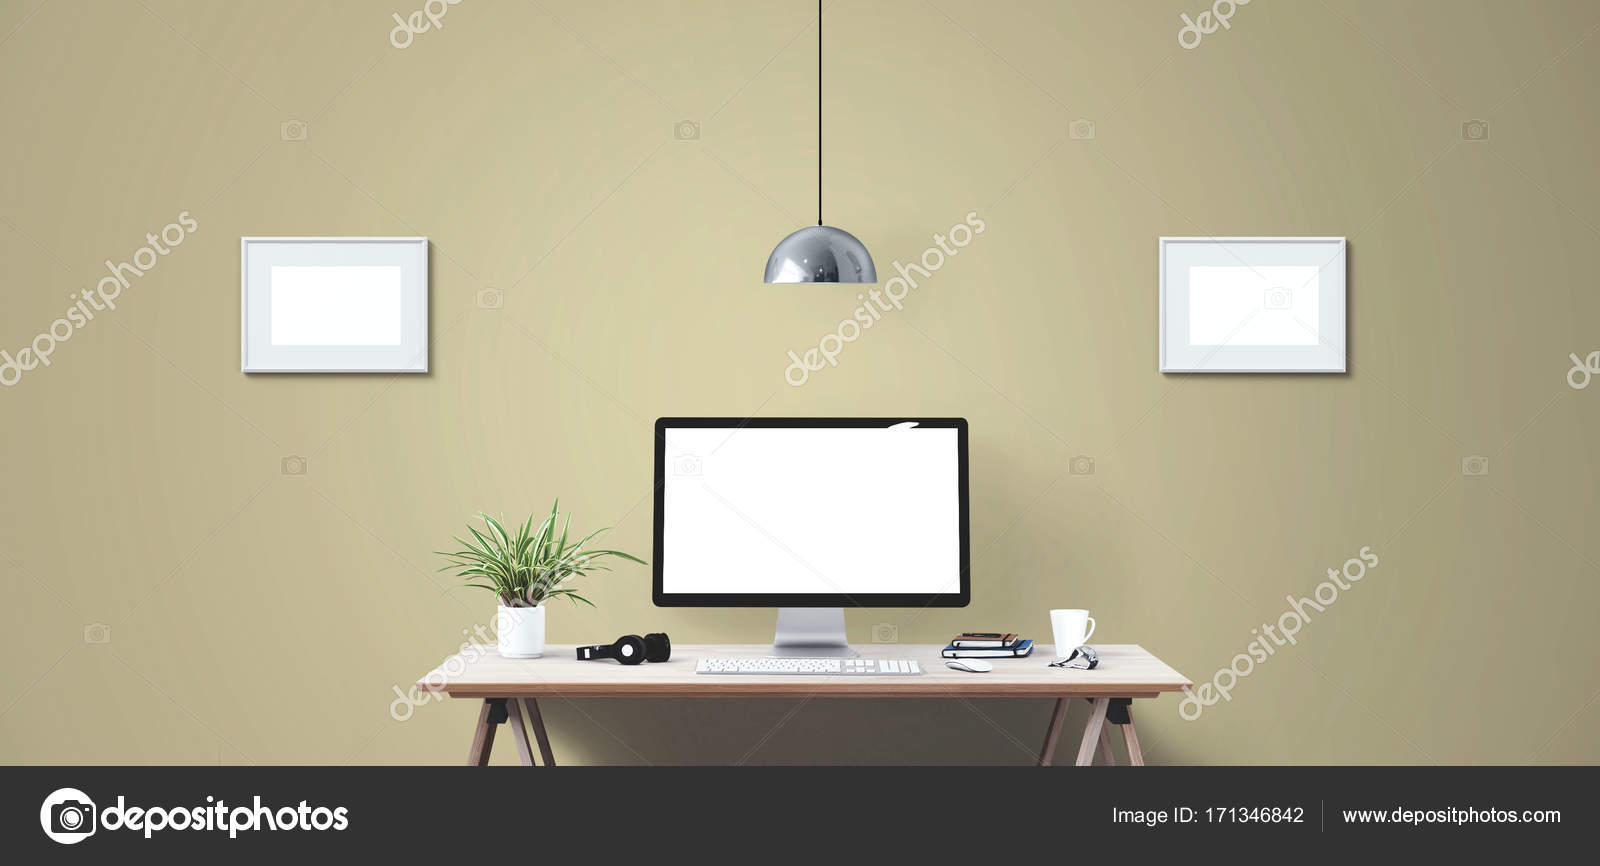 background, banner, book, business, clock, computer, creative, cup ...